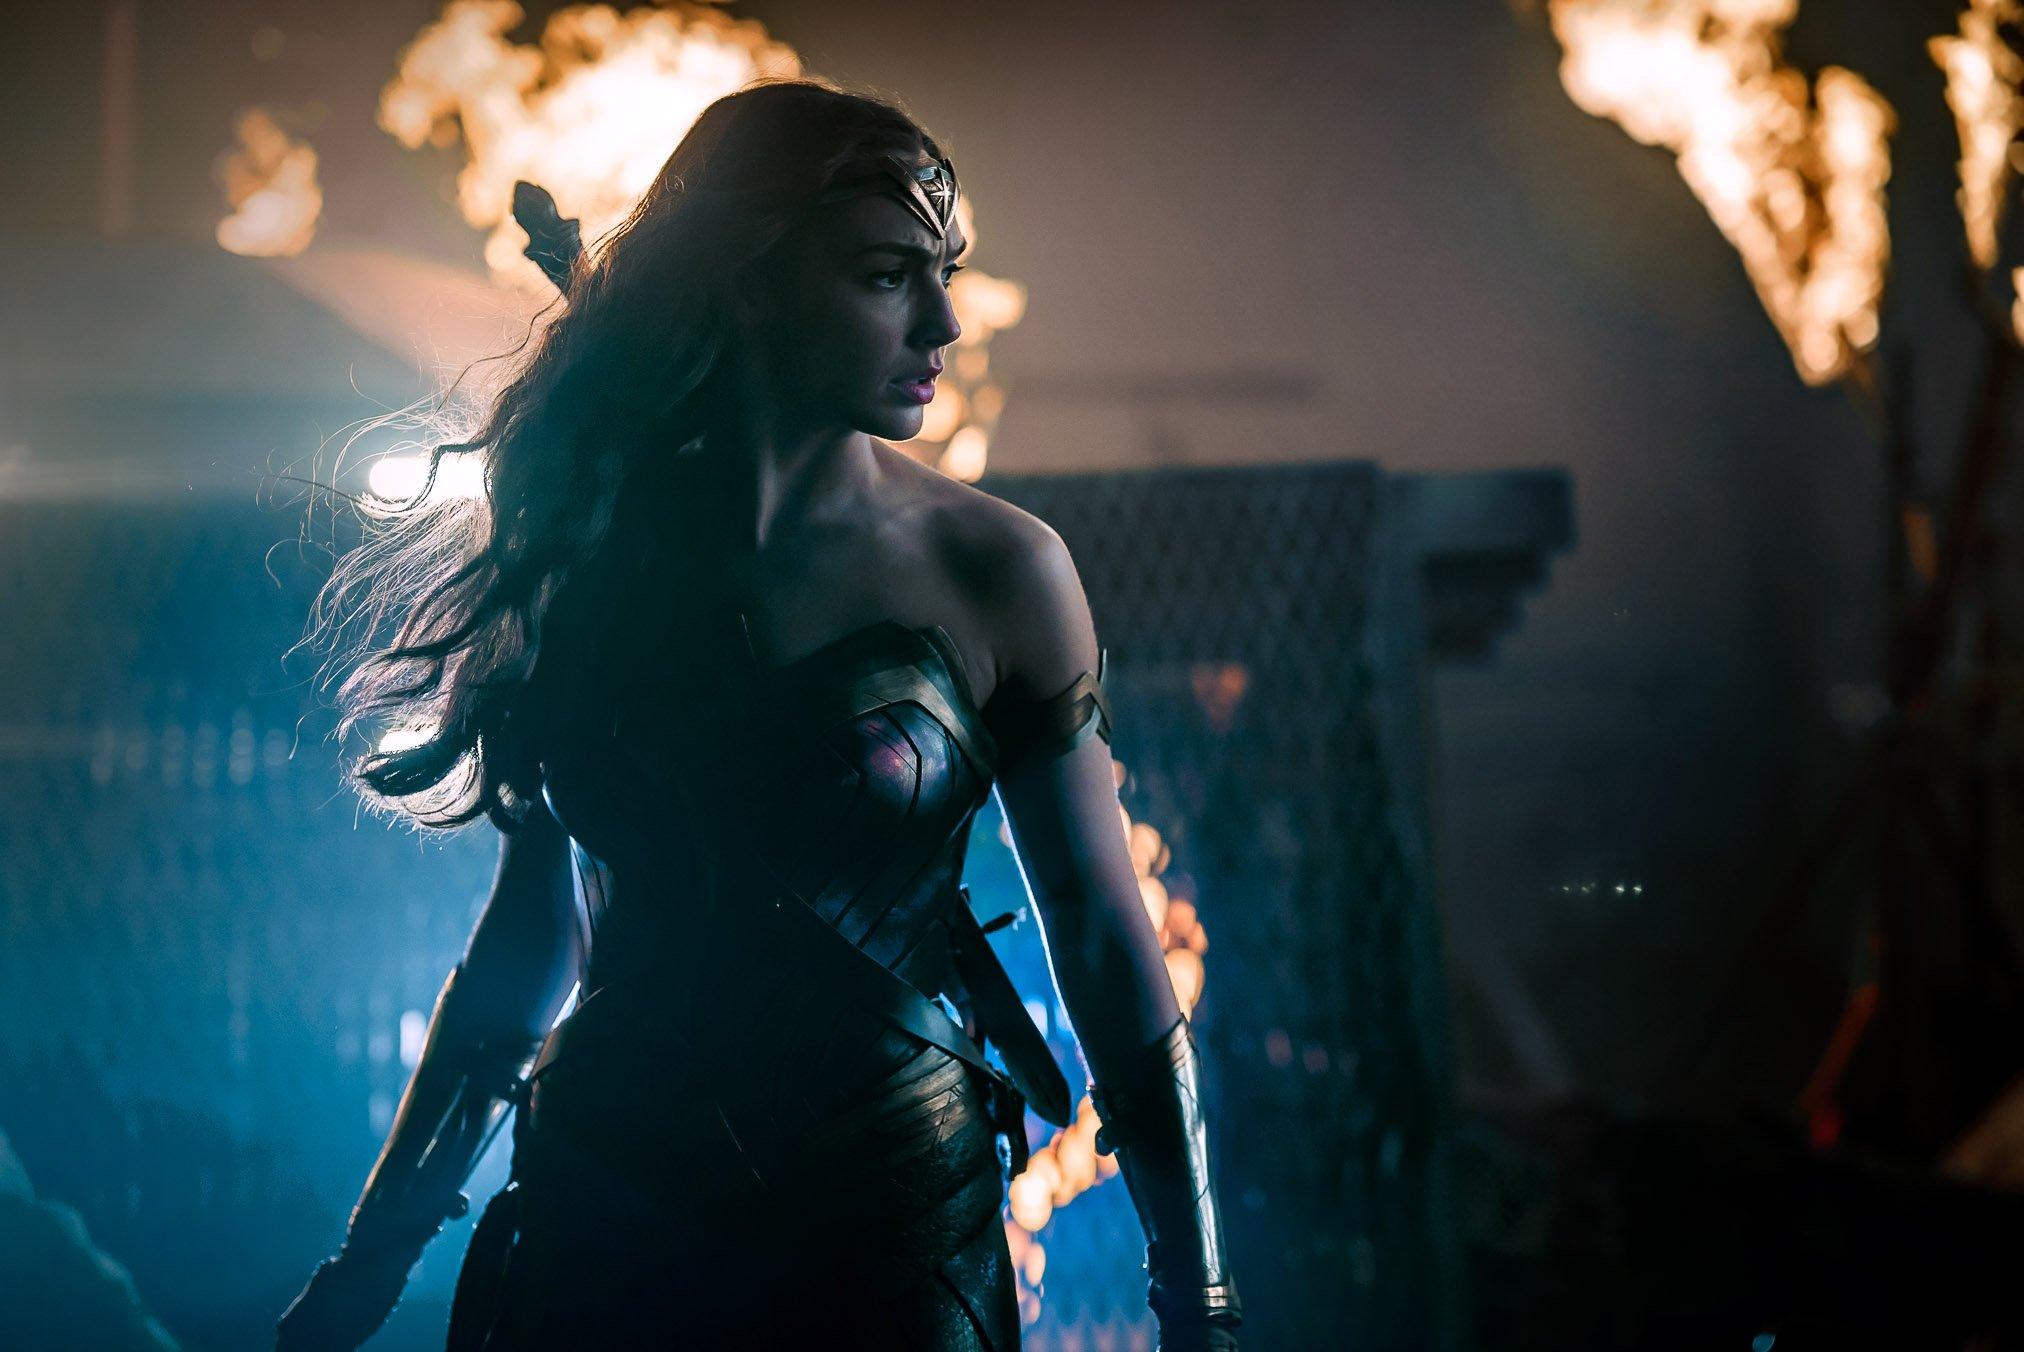 Zack Snyder Shared New Wonder Woman Image